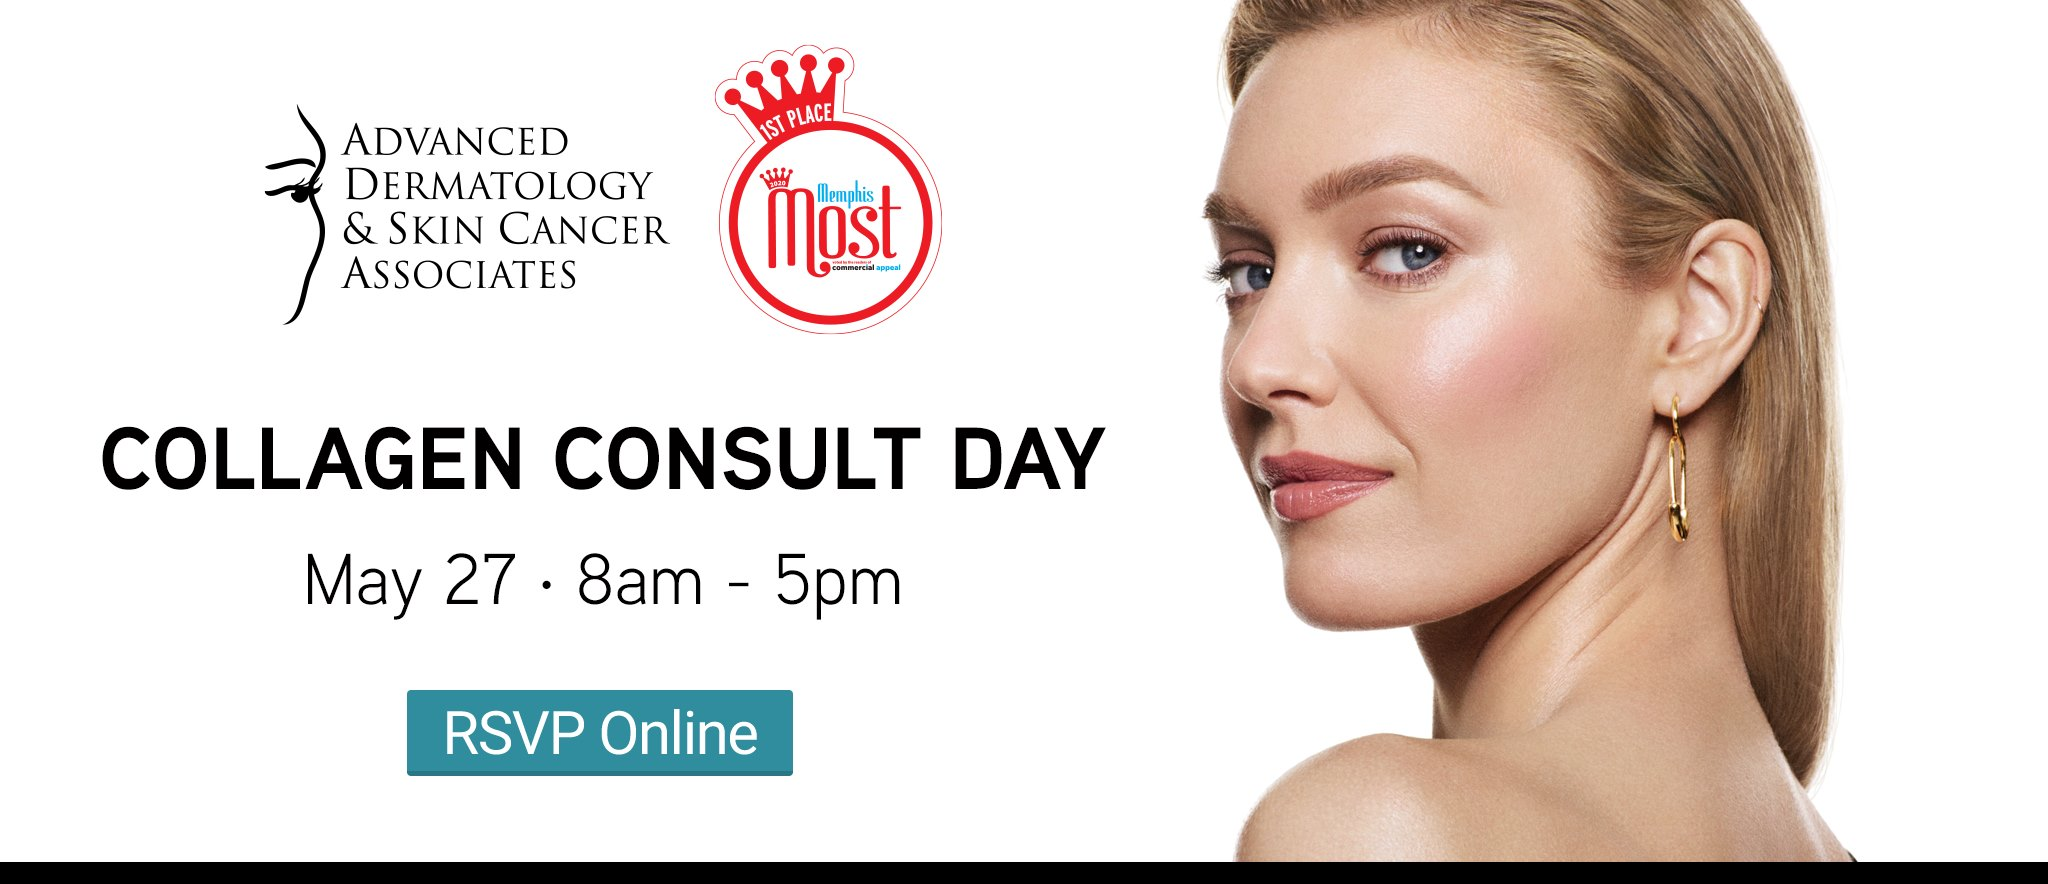 Collagen Consult Day - May 20 - RSVP Online